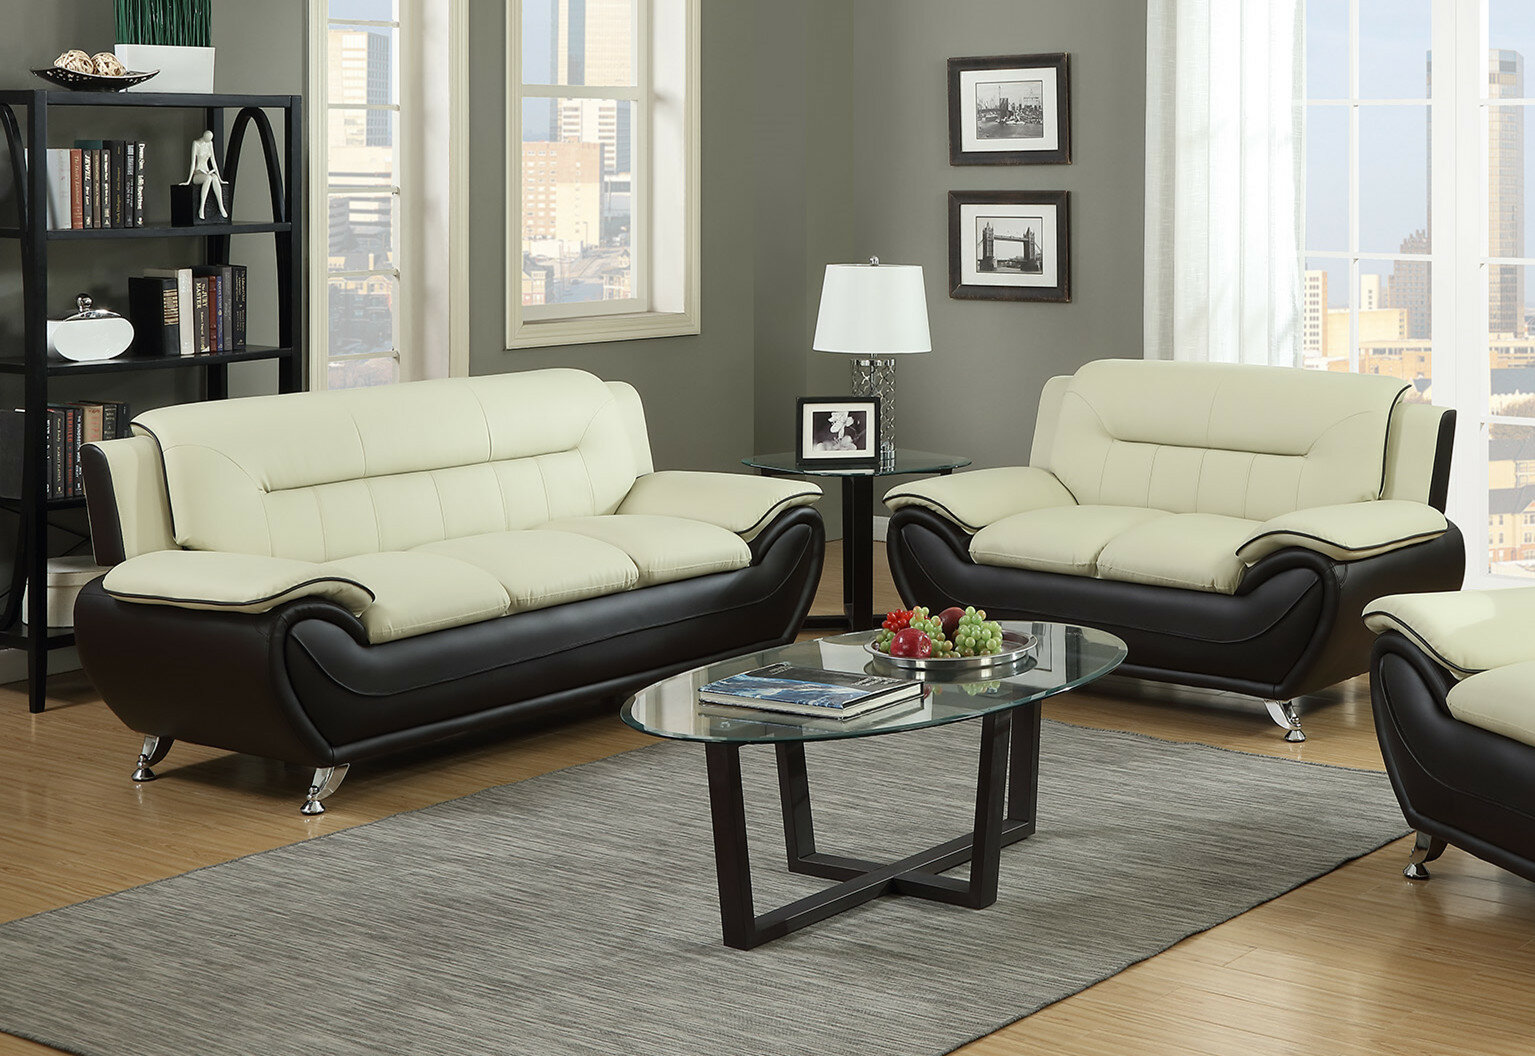 Blevins Contemporary 2 Piece Living Room Set